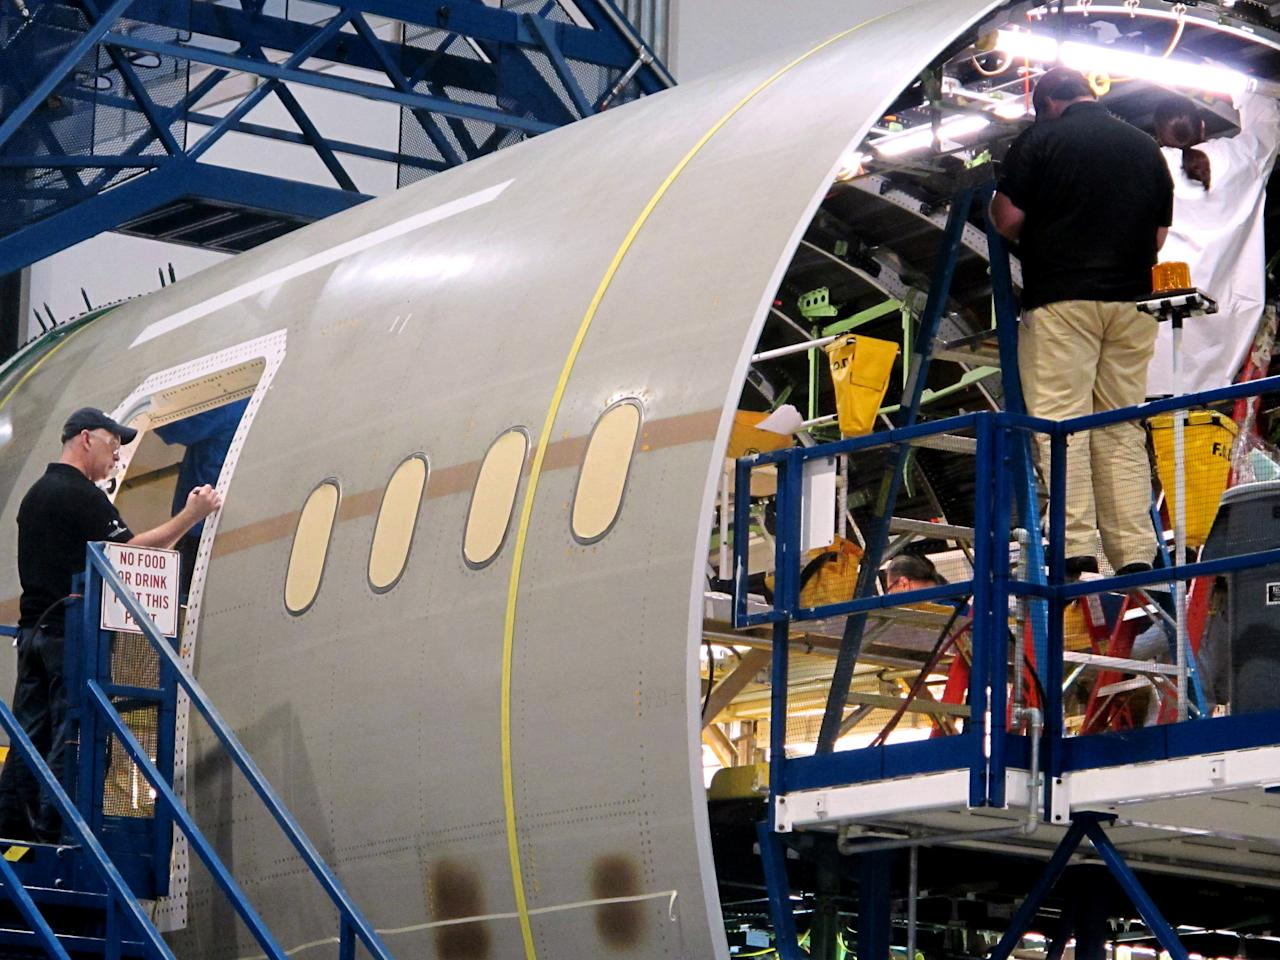 Workers assemble the aft section of Boeing's new 787 aircraft at the company's plant in North Charleston, S.C., on Friday, April 27, 2012. The company was rolling out the first of its new 787s manufactured at its South Carolina plant which opened last year. (AP Photo/Bruce Smith)